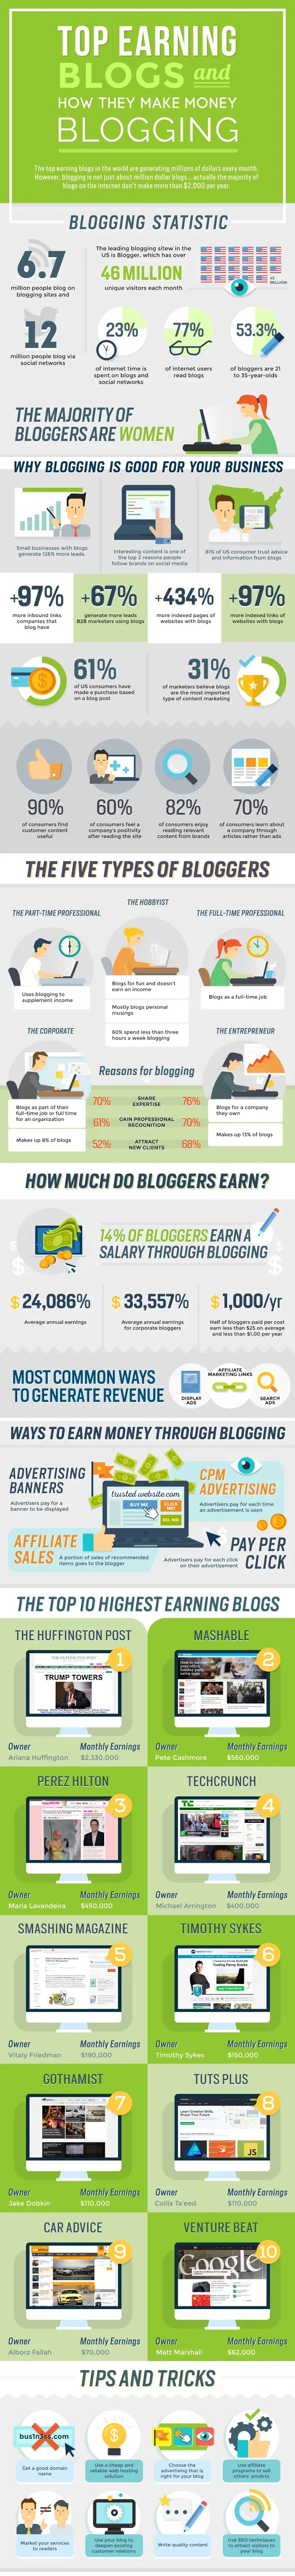 How to Make Money with Your Blog in 2020